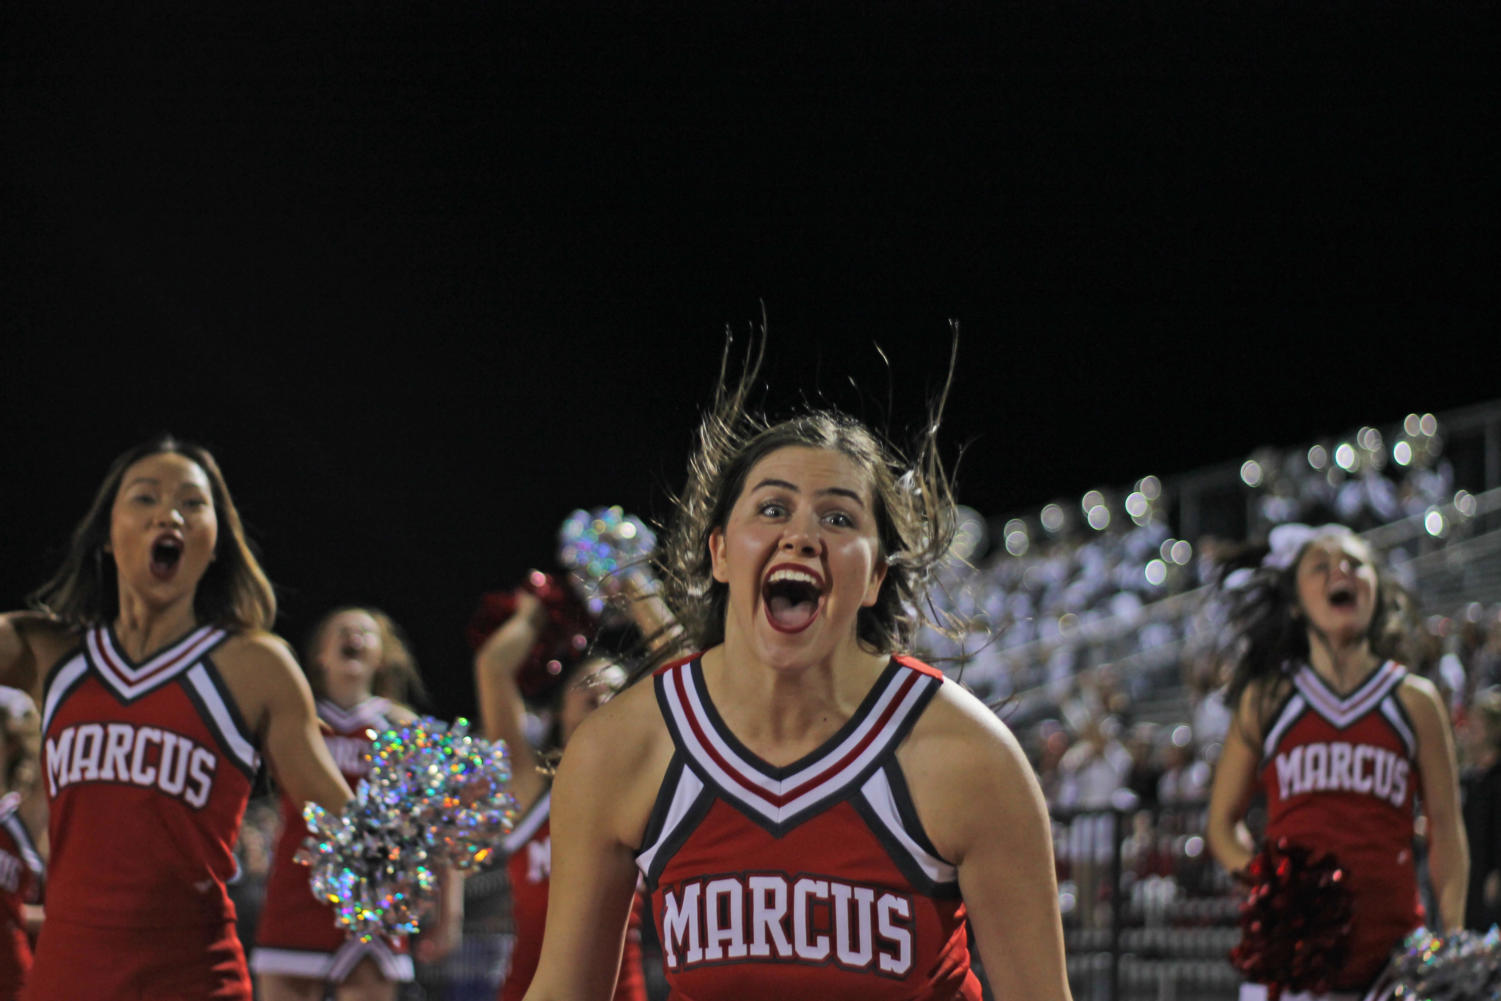 Varsity cheerleaders jump in celebration as Marcus makes a touchdown.